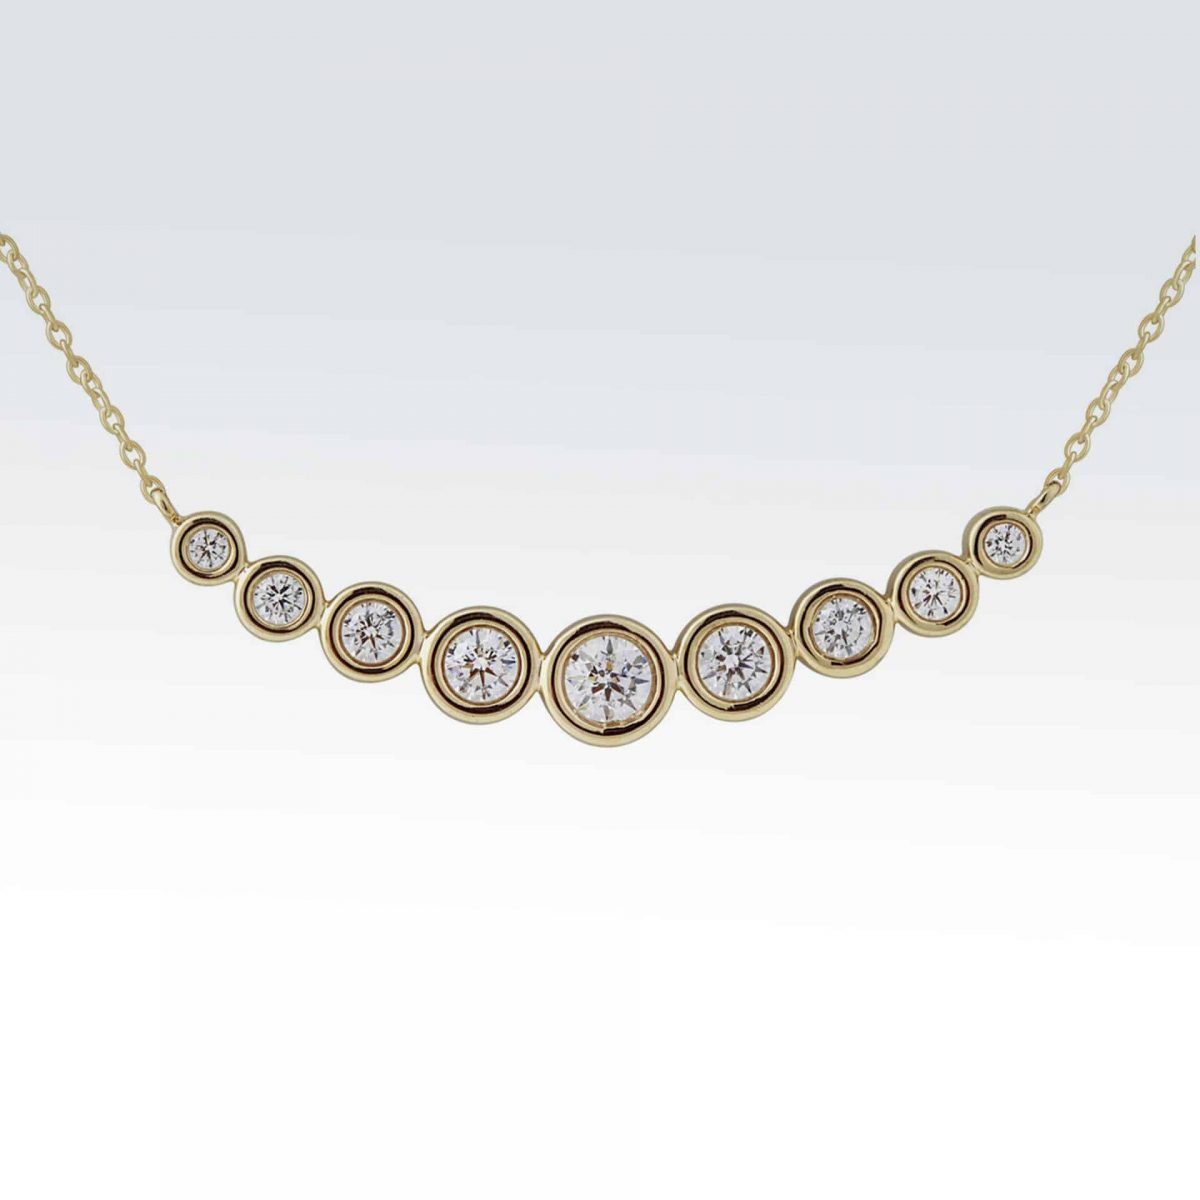 14 karat yellow gold necklace with 7 bezel set diamonds